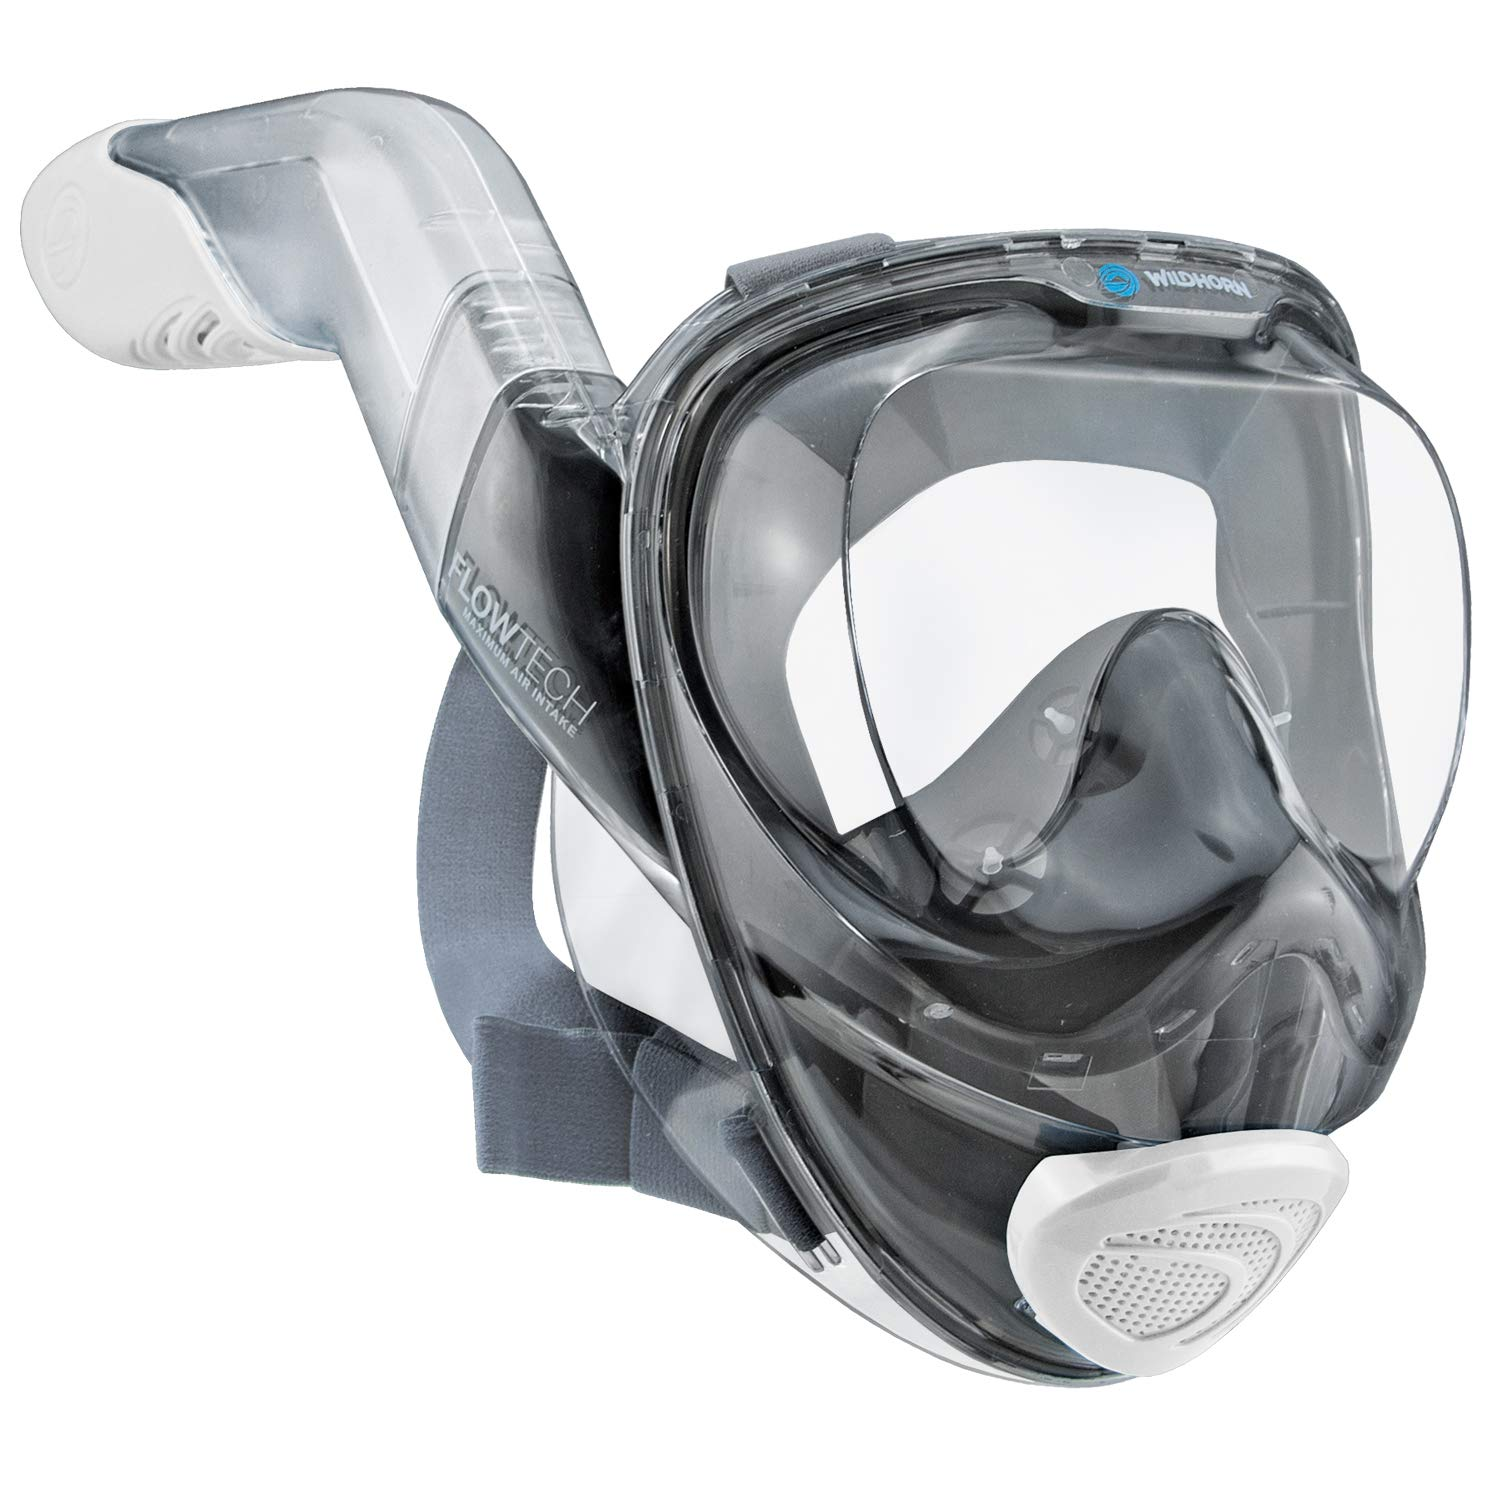 WildHorn Outfitters Seaview 180° V2 Full Face Snorkel Mask with FLOWTECH Advanced Breathing System - Allows for A Natural & Safe Snorkeling Experience- Panoramic Side Snorkel Set Design by WildHorn Outfitters